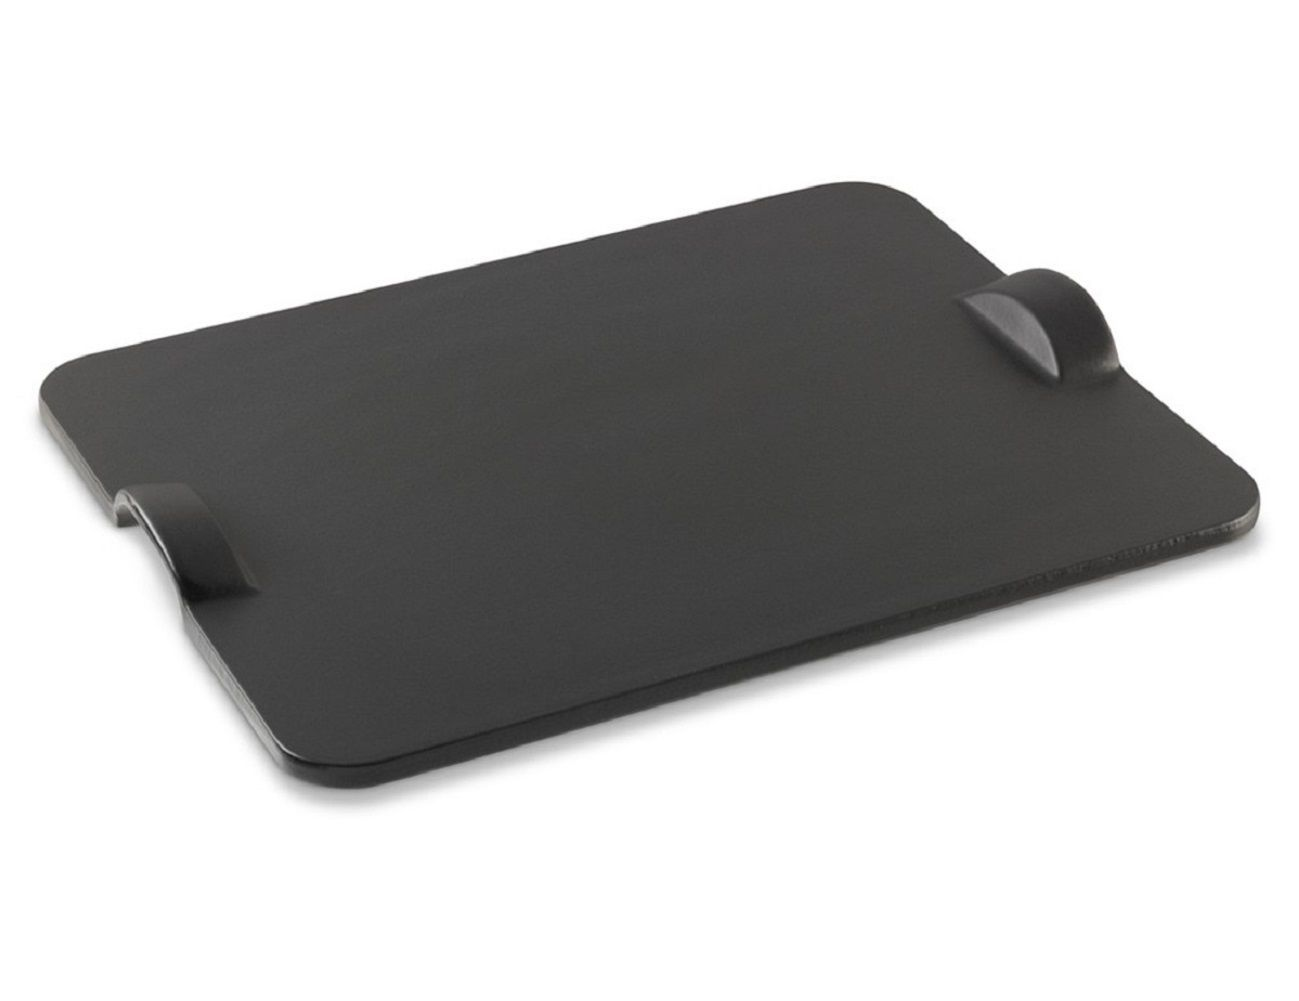 Emile Henry Flame Top Baking Stone